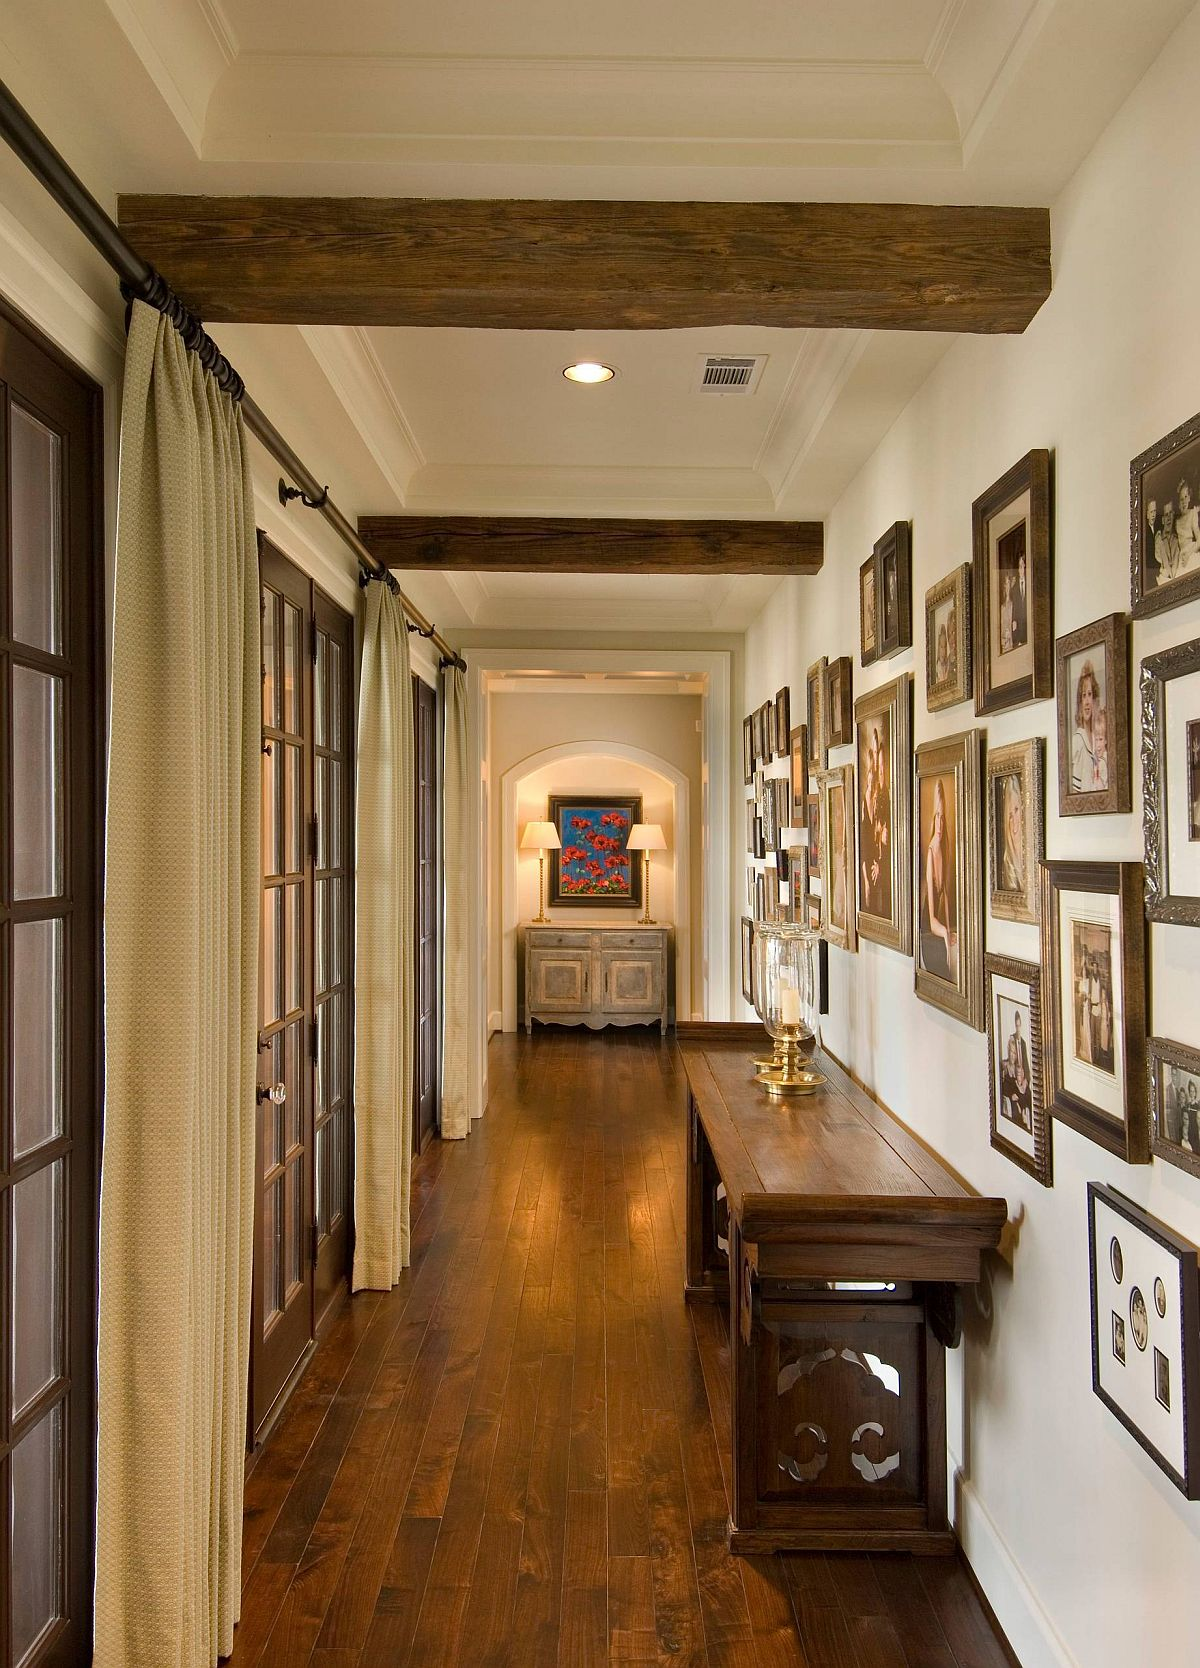 Using frames in similar finish gives this hallway a more beautiful visual appeal